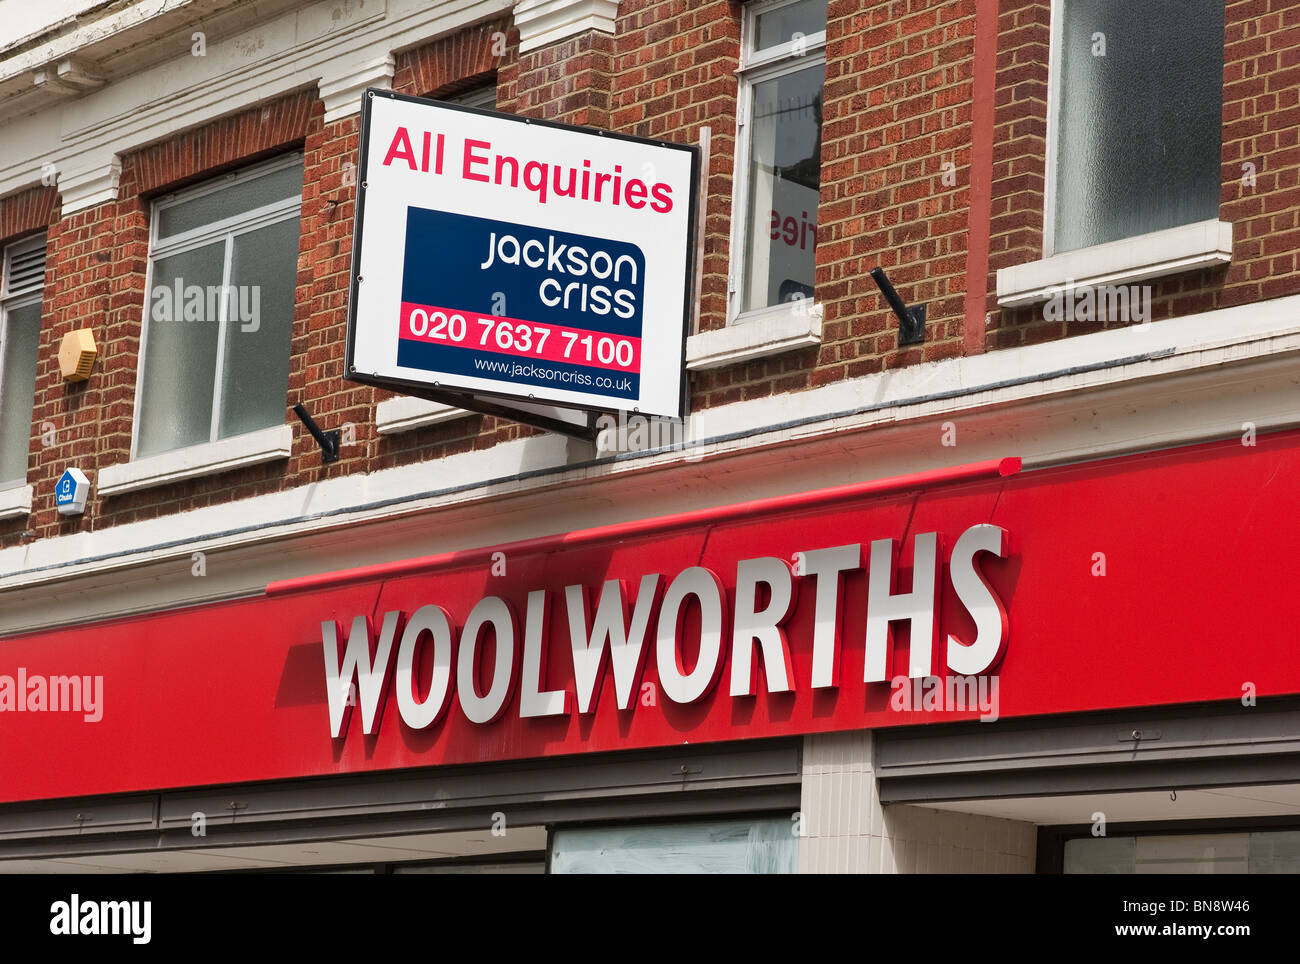 Former Woolworths premises in Cirencester for sale - Stock Image